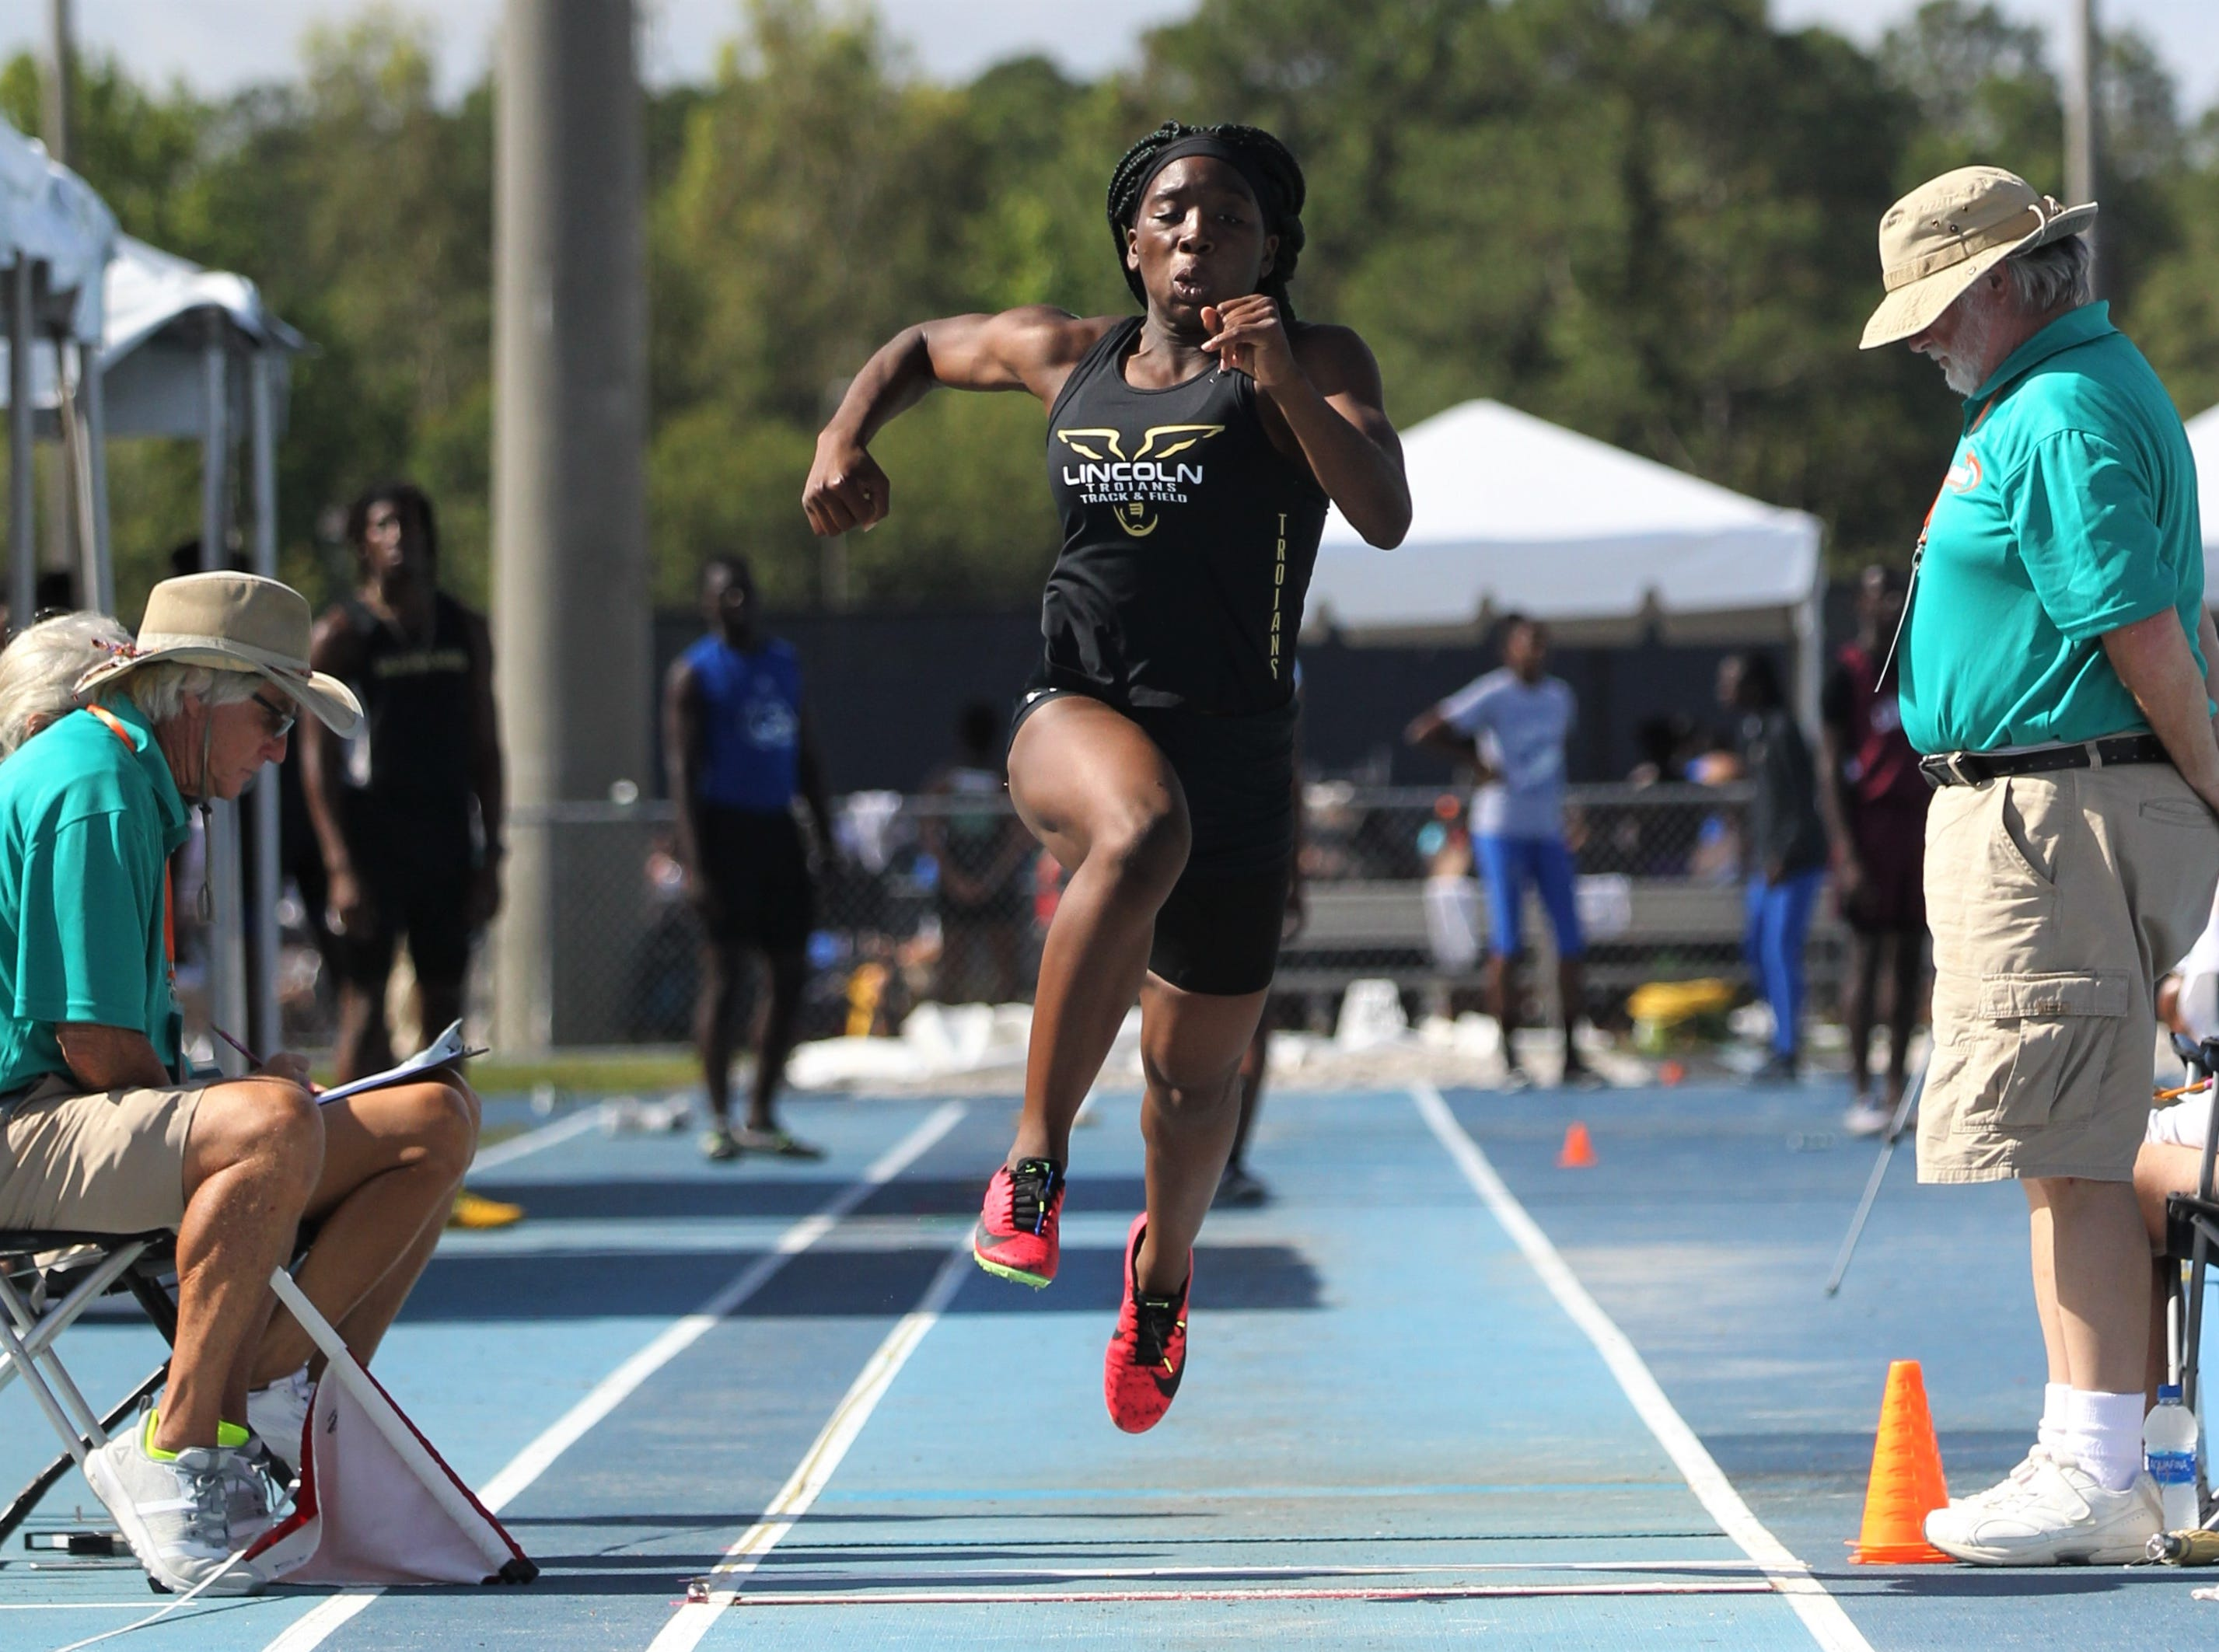 Lincoln sophomore Miahna Harden competes in triple jump during the FHSAA Track and Field State Championships at UNF's Hodges Stadium in Jacksonville on May 4, 2019.